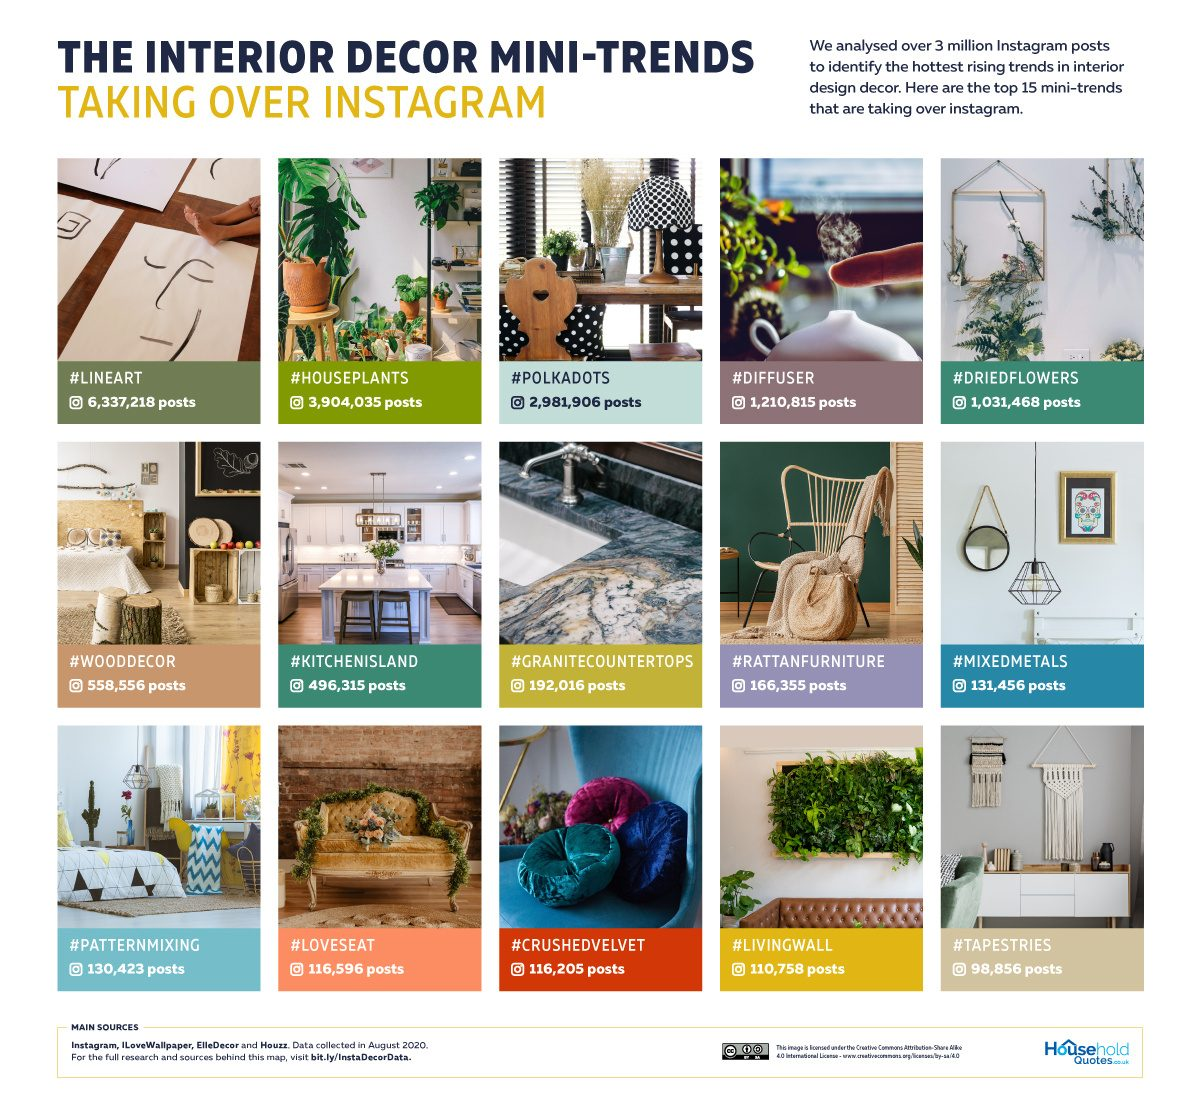 Interior Design Mini Trends